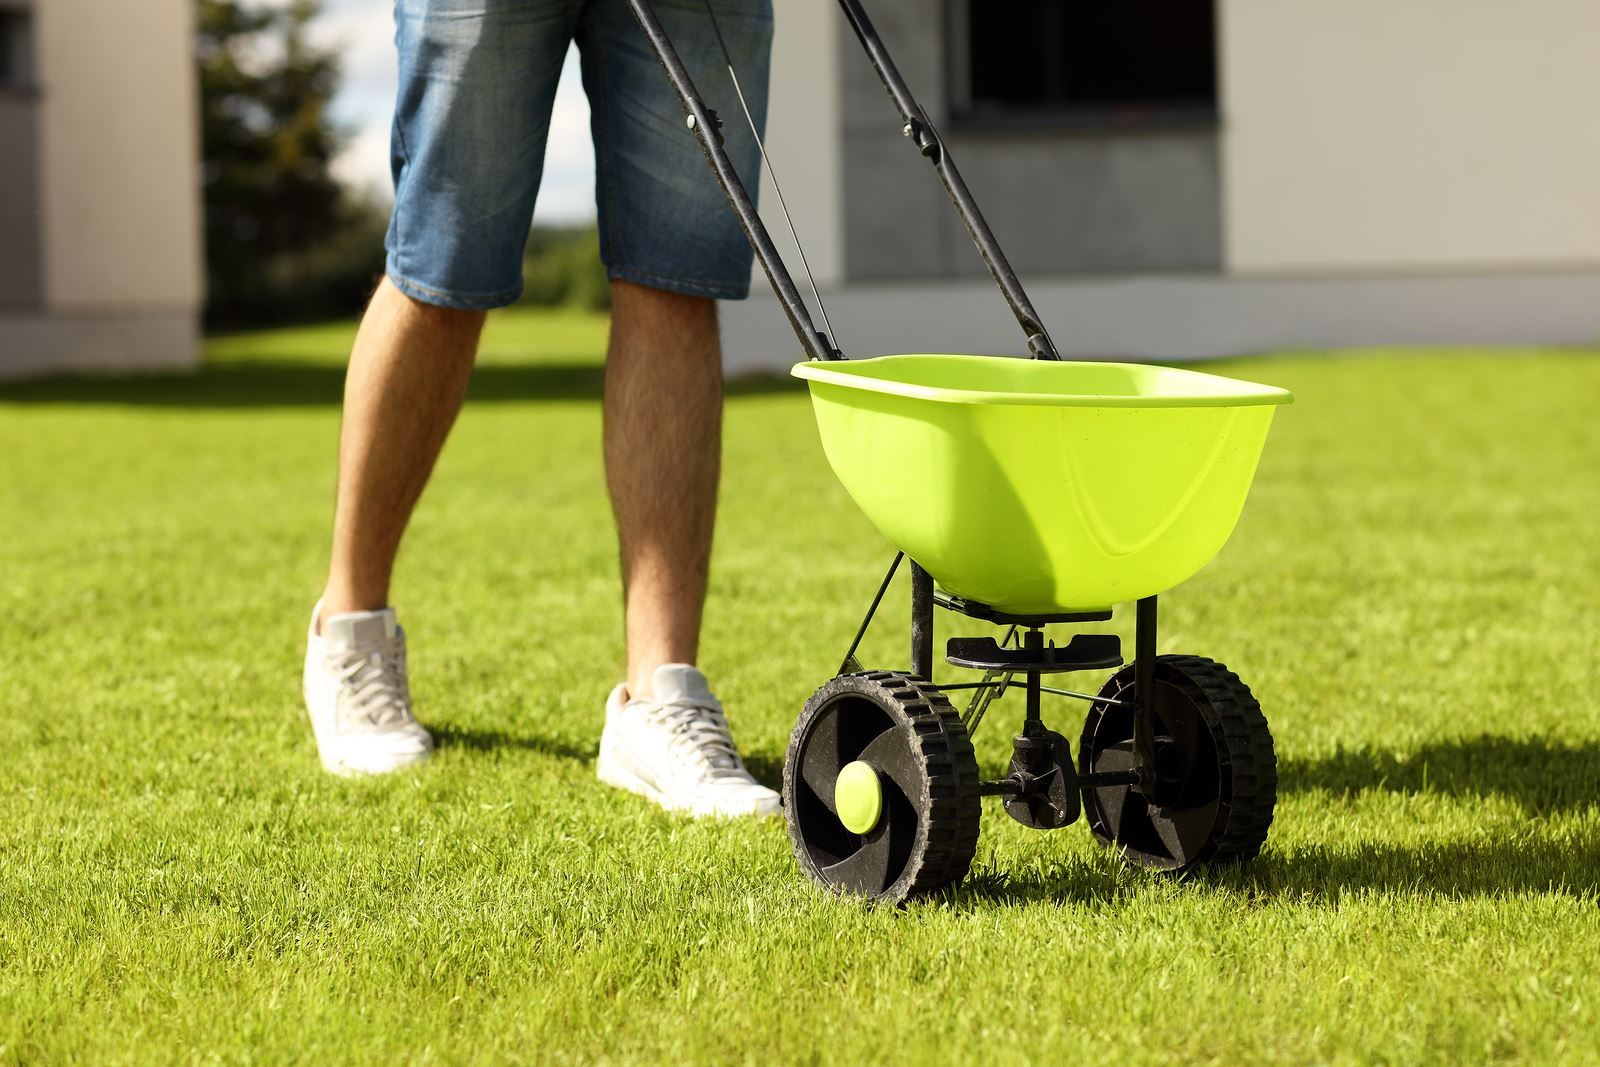 Photo of man's legs and a green fertilizer spreader as the man fertilizes a well-kempt lawn